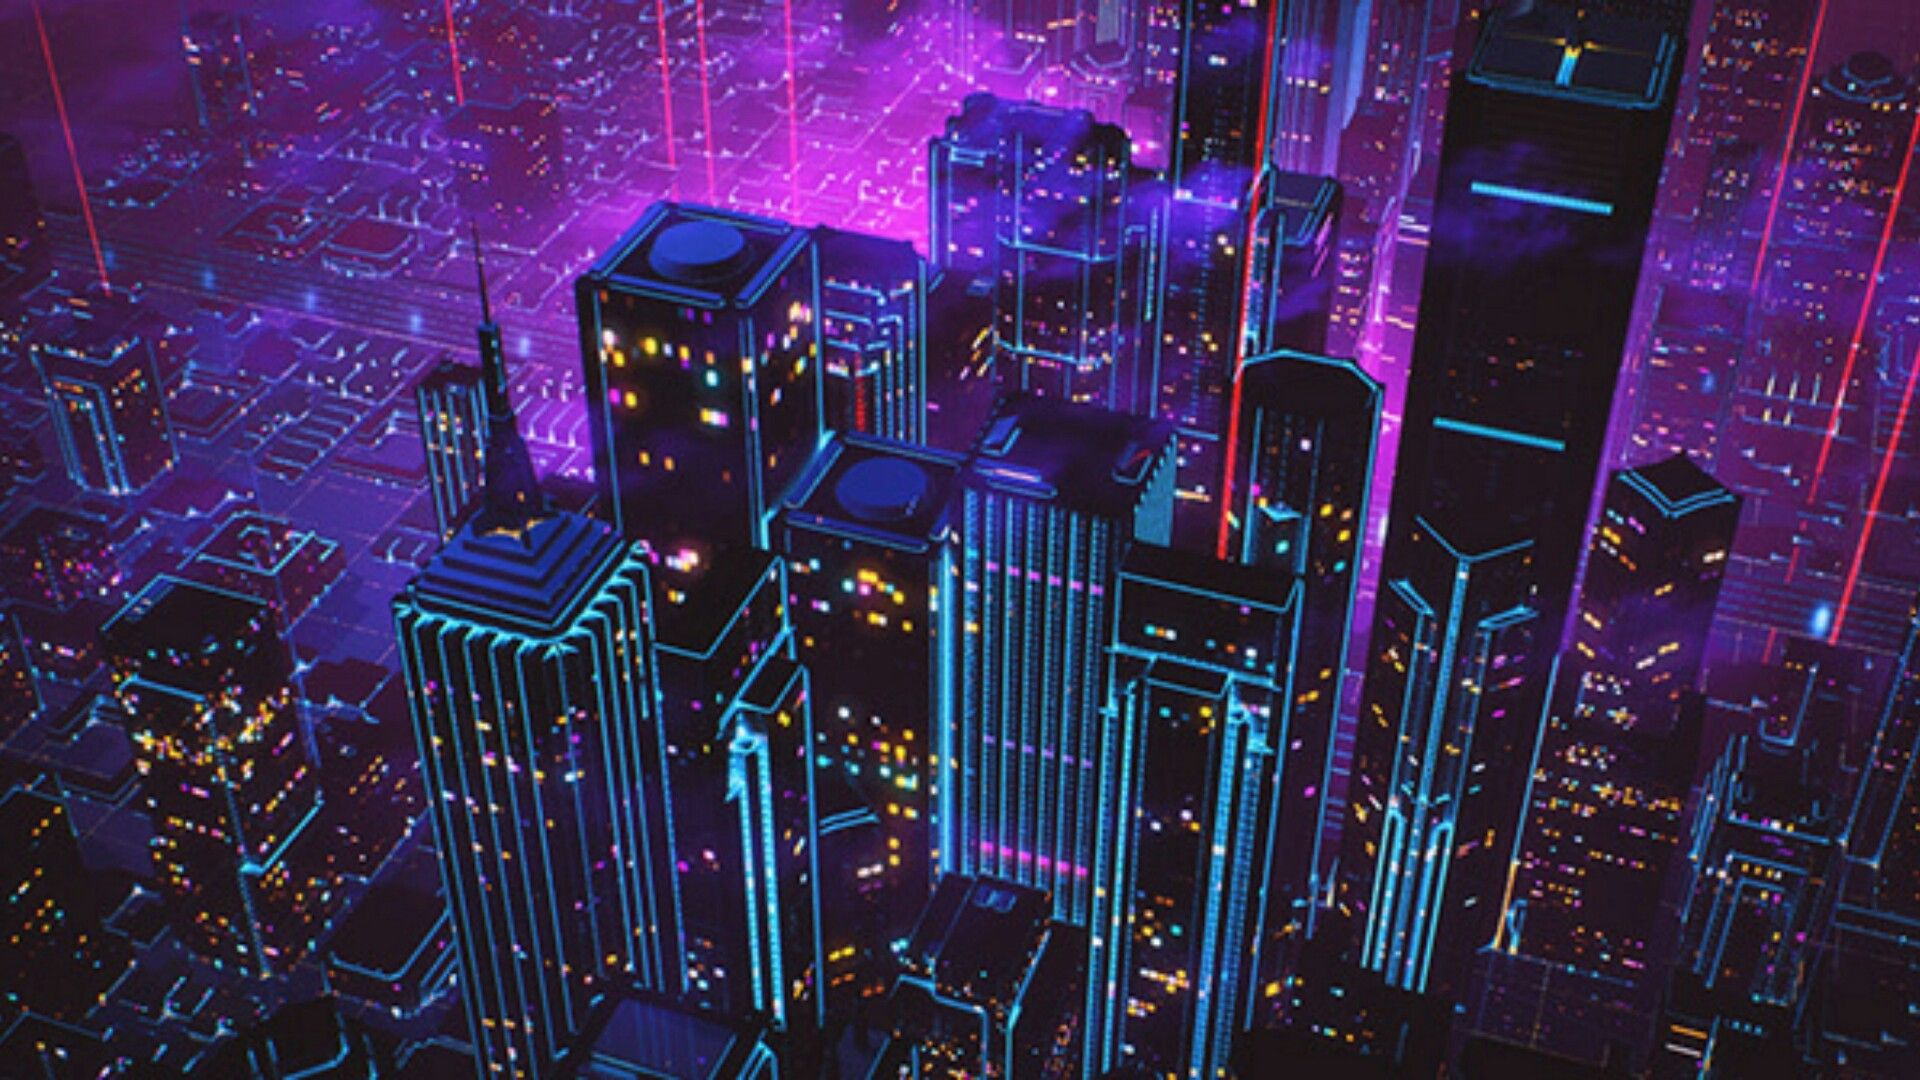 80s Aesthetic Wallpapers - Top Free 80s Aesthetic ...